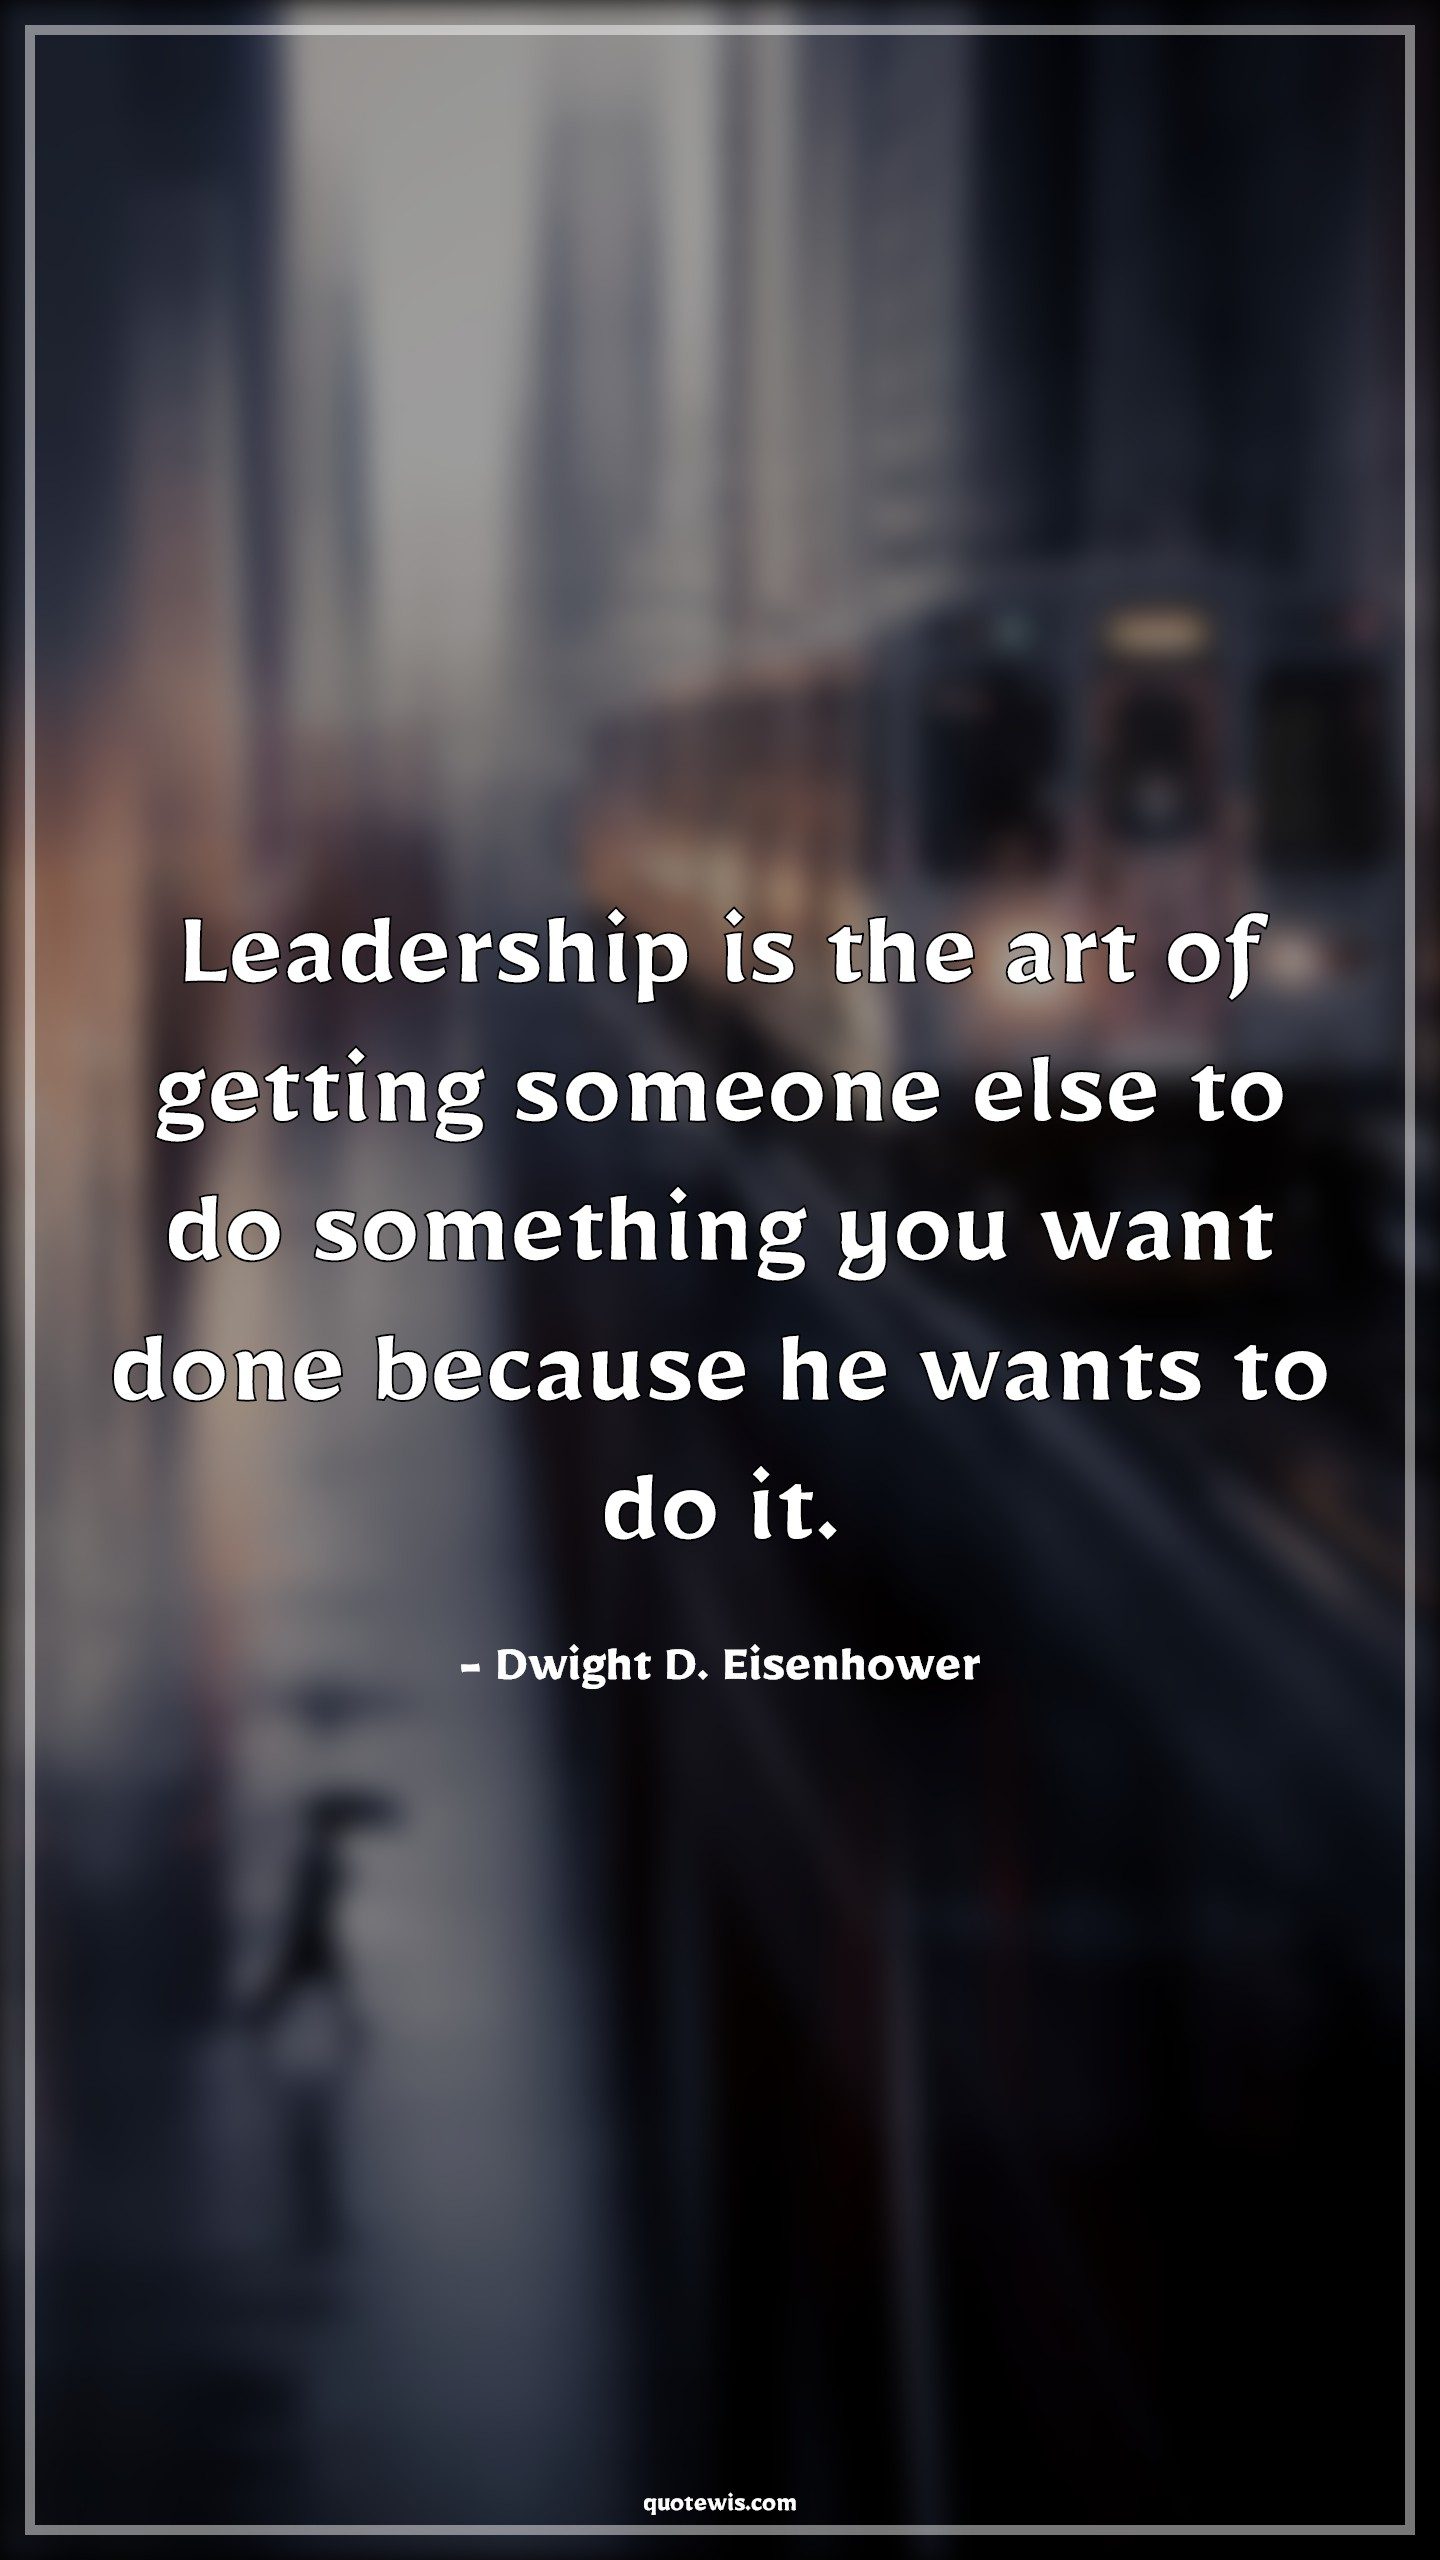 Leadership is the art of getting someone else to do something you want done because he wants to do it.